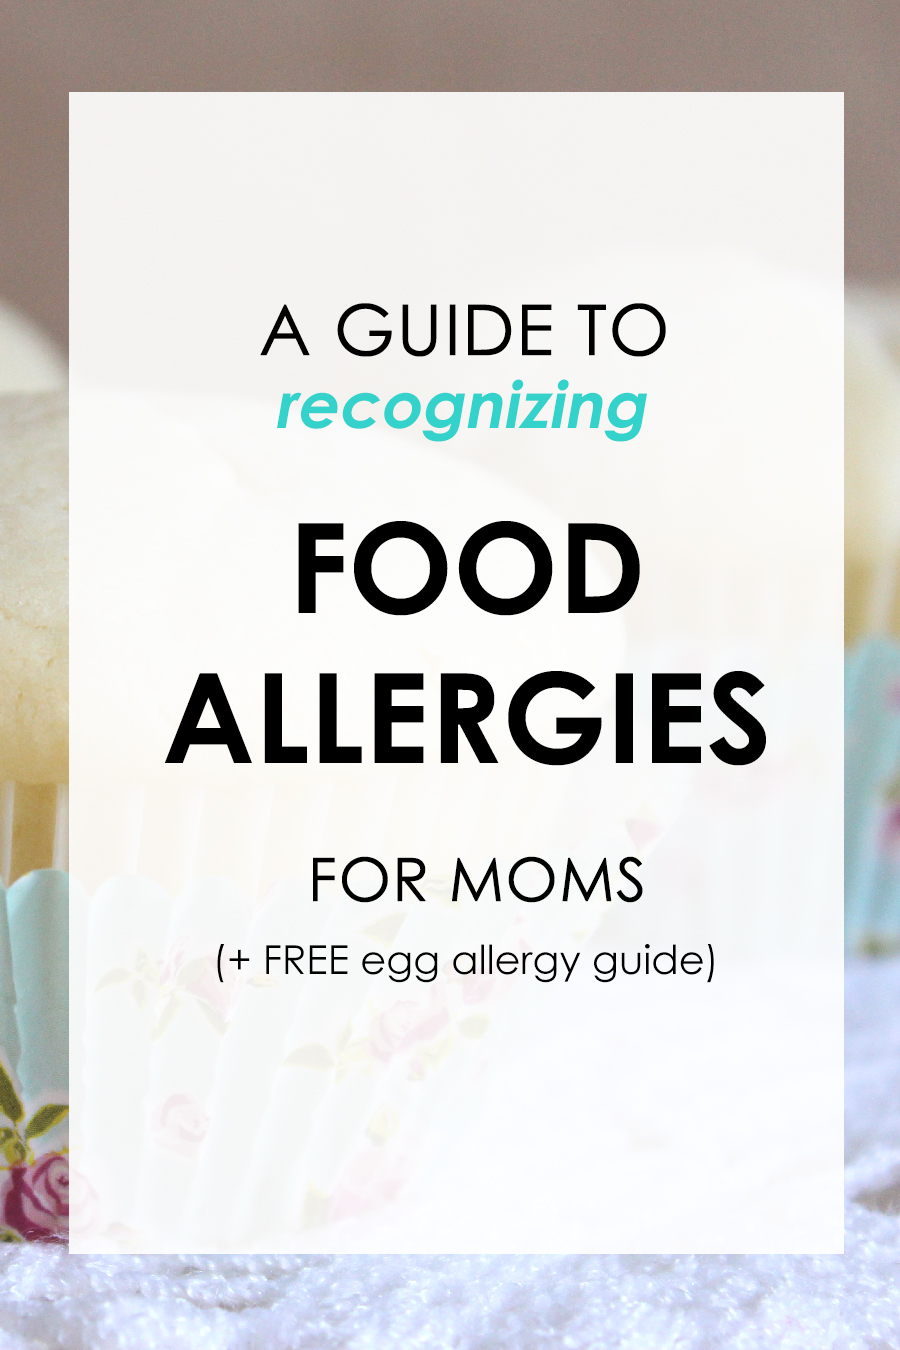 A guide to recognizing food allergies for mom (+ FREE egg allergy guide). When I found out my son is severely allergic to eggs, it quite literally changed our life around, food wise. From cooking, baking and grocery shopping, a lot of habits had to change. Here are few tips and advice for new moms introducing food for the first time to their baby.